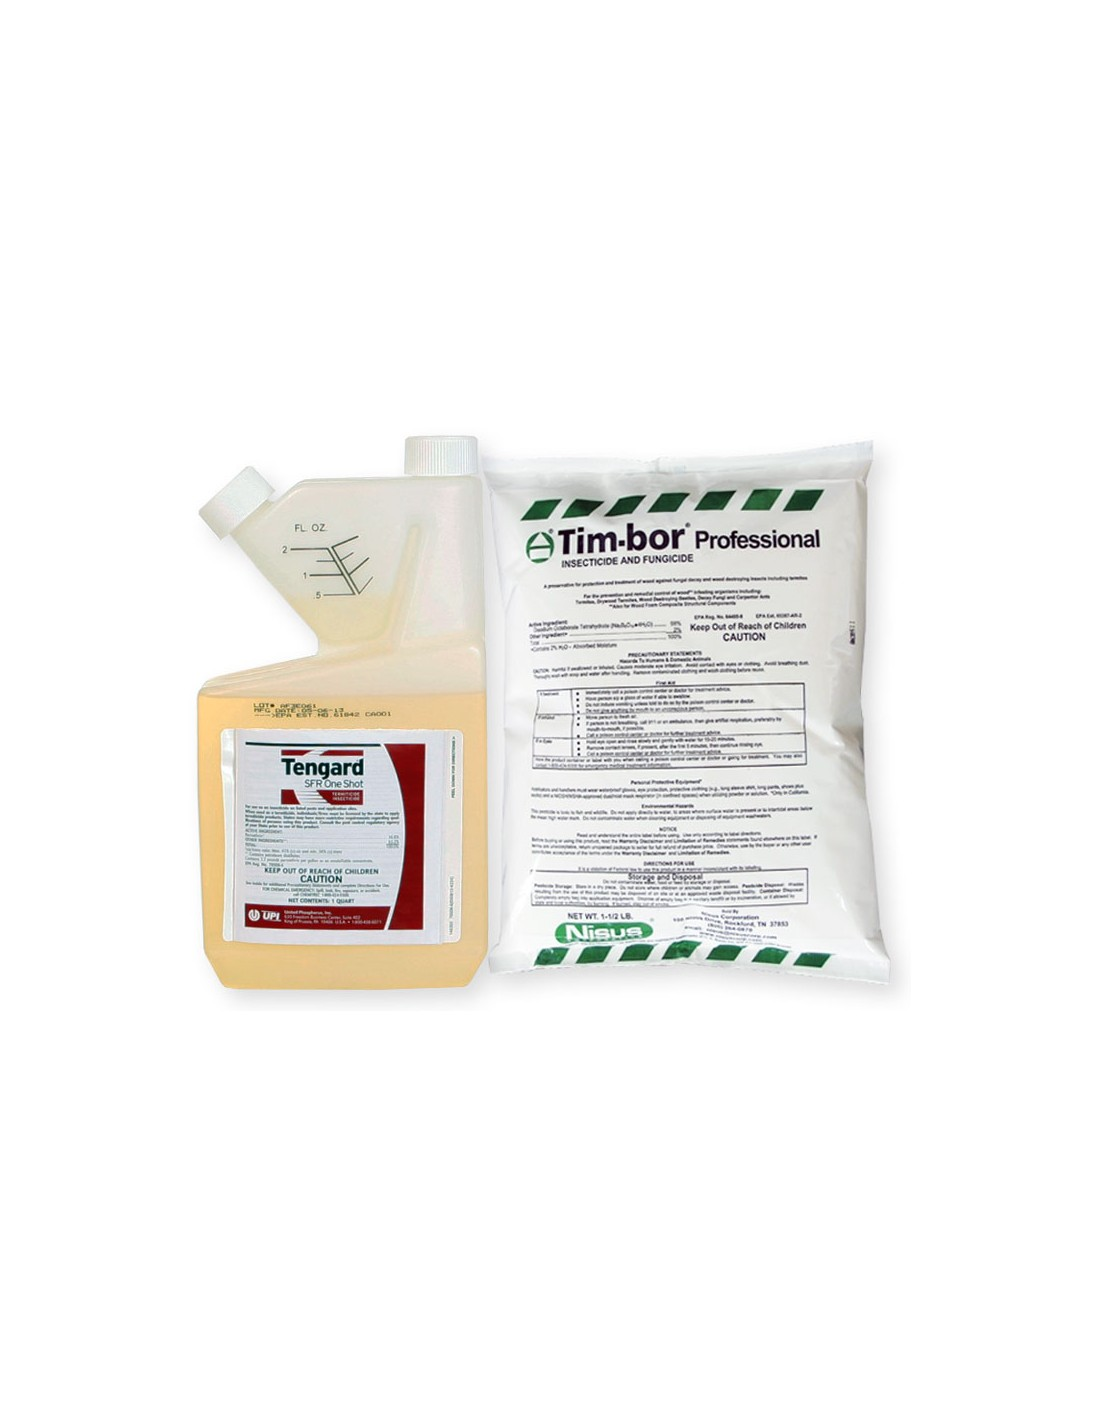 Subterranean Termite Spot Treatment Kit